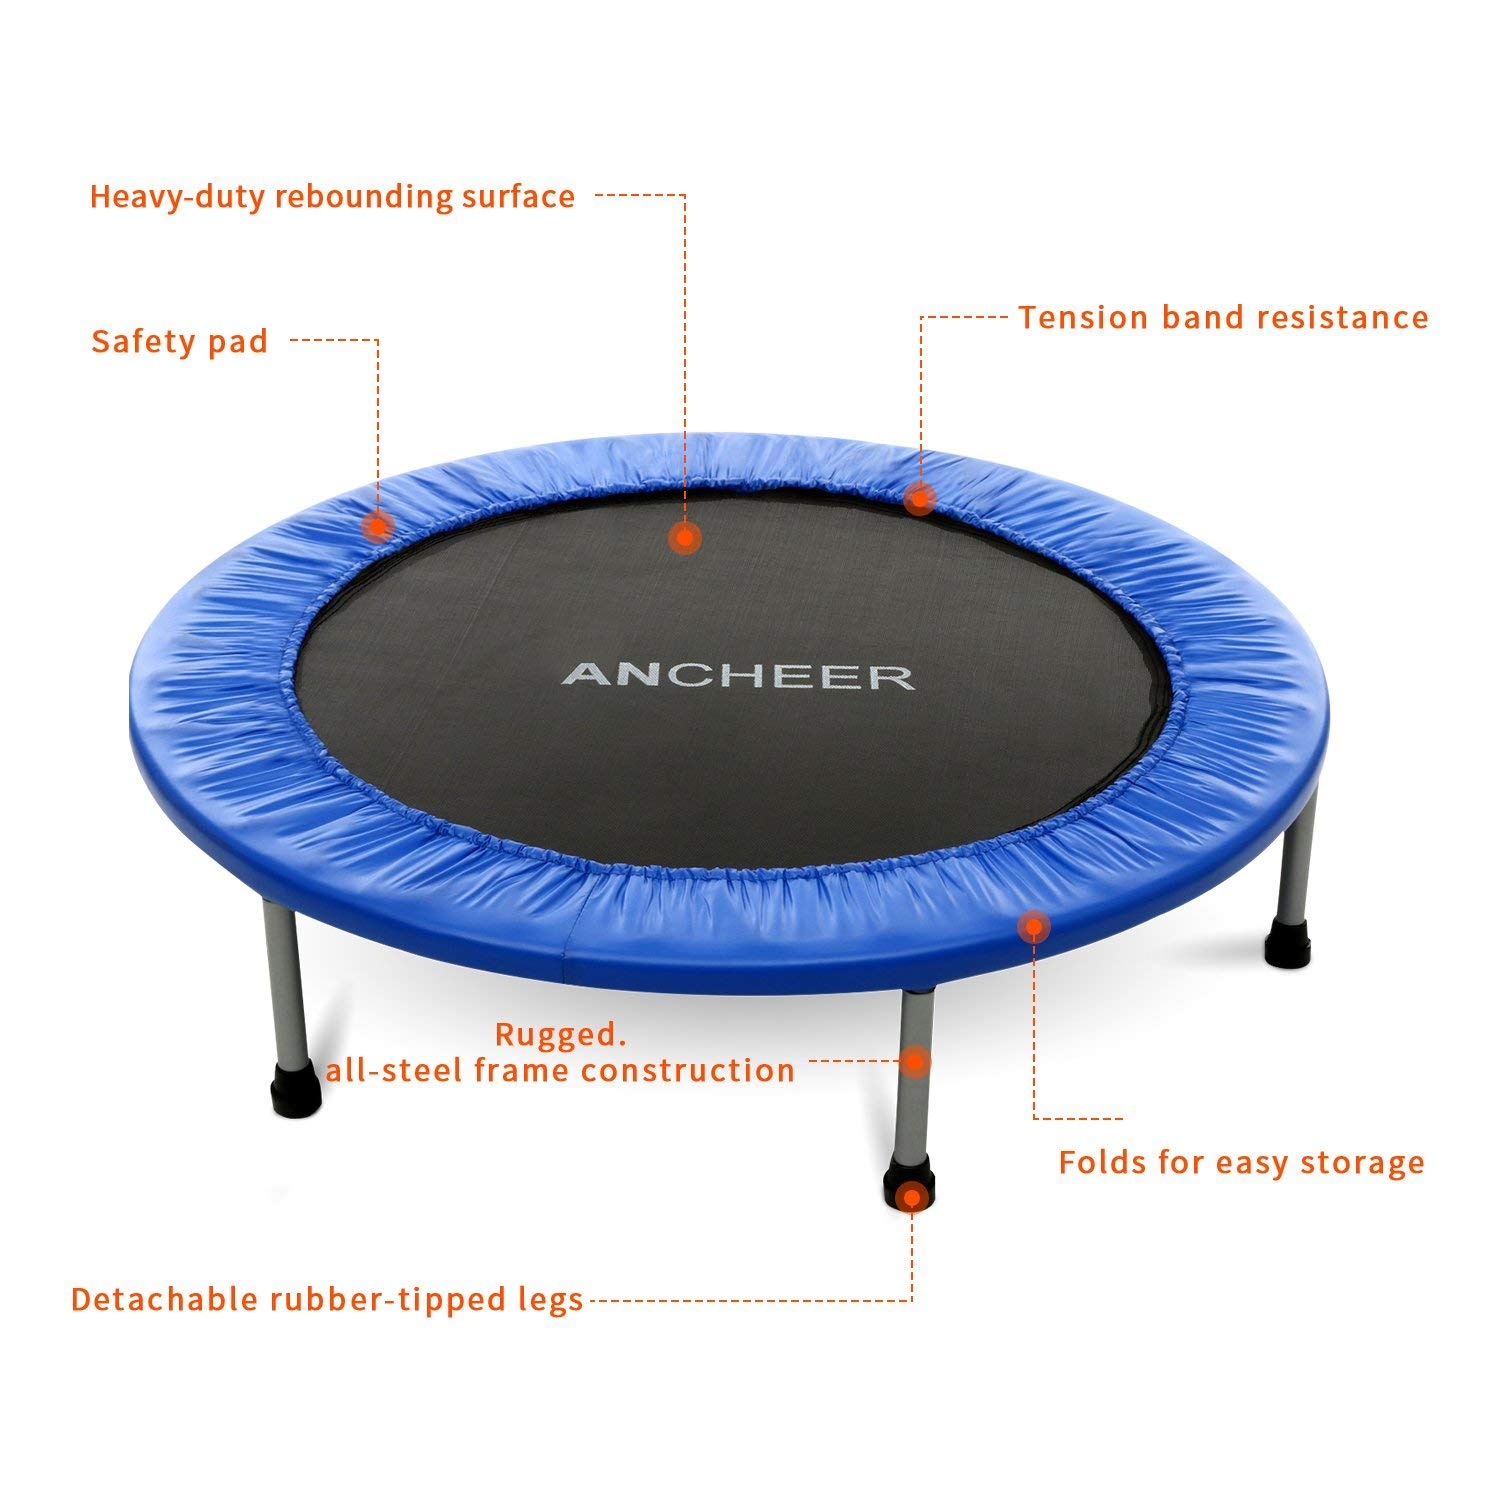 ANCHEER Max Load 220lbs Rebounder Trampoline with Safety Pad for Indoor Garden Workout Cardio Training (2 Sizes: 38 inch/40 inch, Two Modes: Folding/Not Folding) (Renewed) by ANCHEER (Image #5)